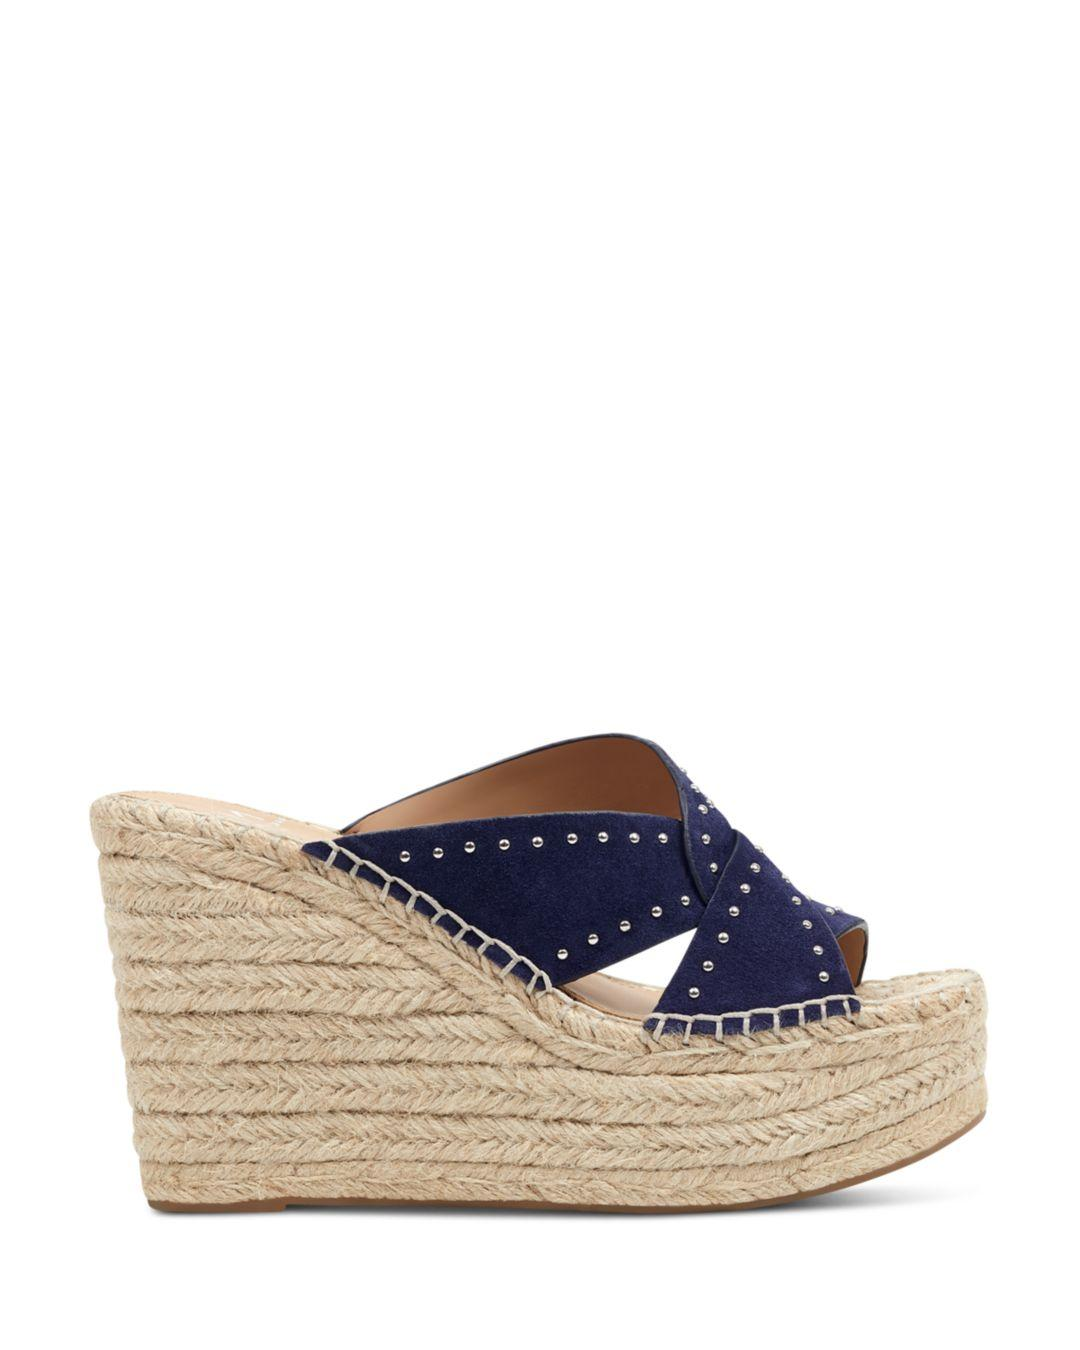 2bcebd63805 Marc Fisher Women s Angelina Studded Espadrille Wedge Sandals in Blue - Lyst